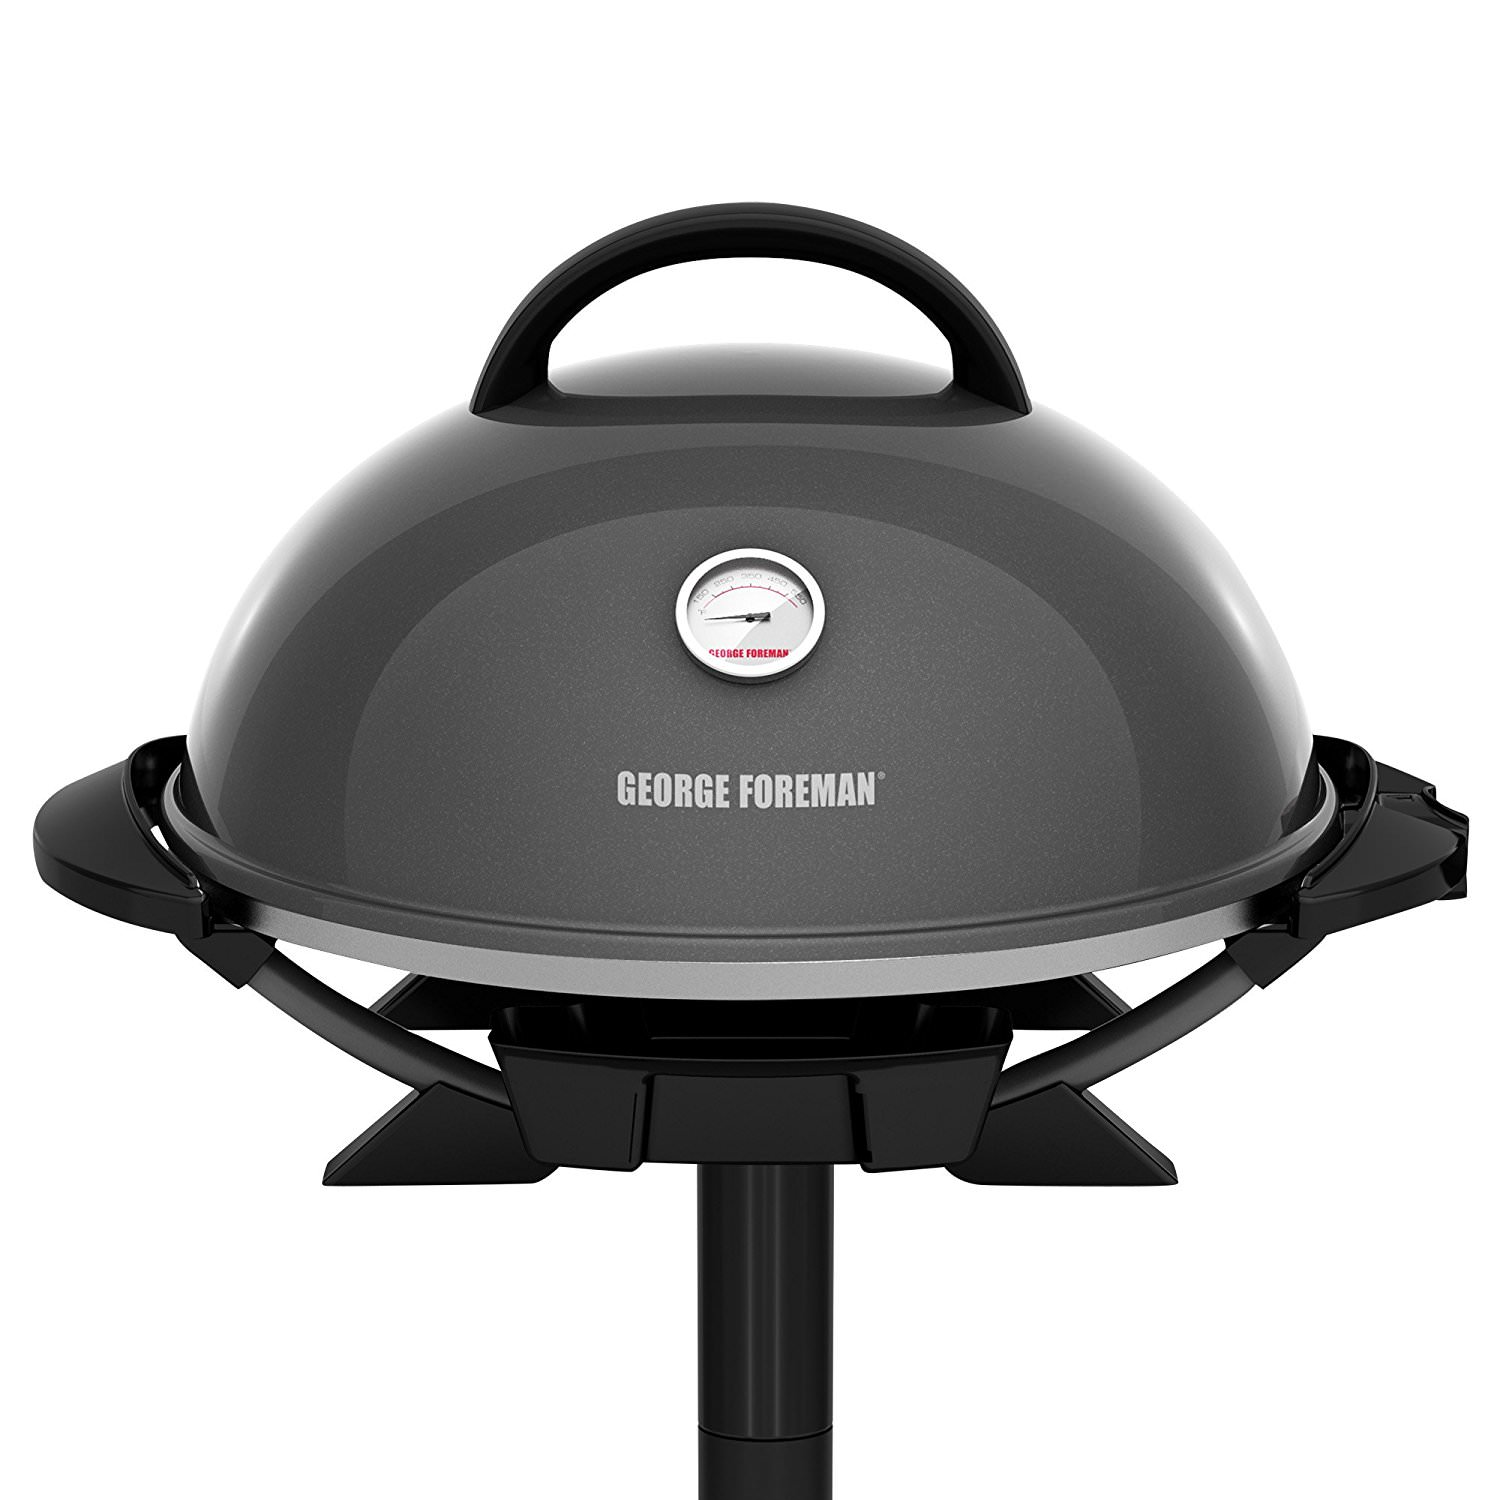 George Foreman PRO Indoor / Outdoor Grill , 240 Sq In, Ceramic Plates, Temp Gauge, GFO3320GM